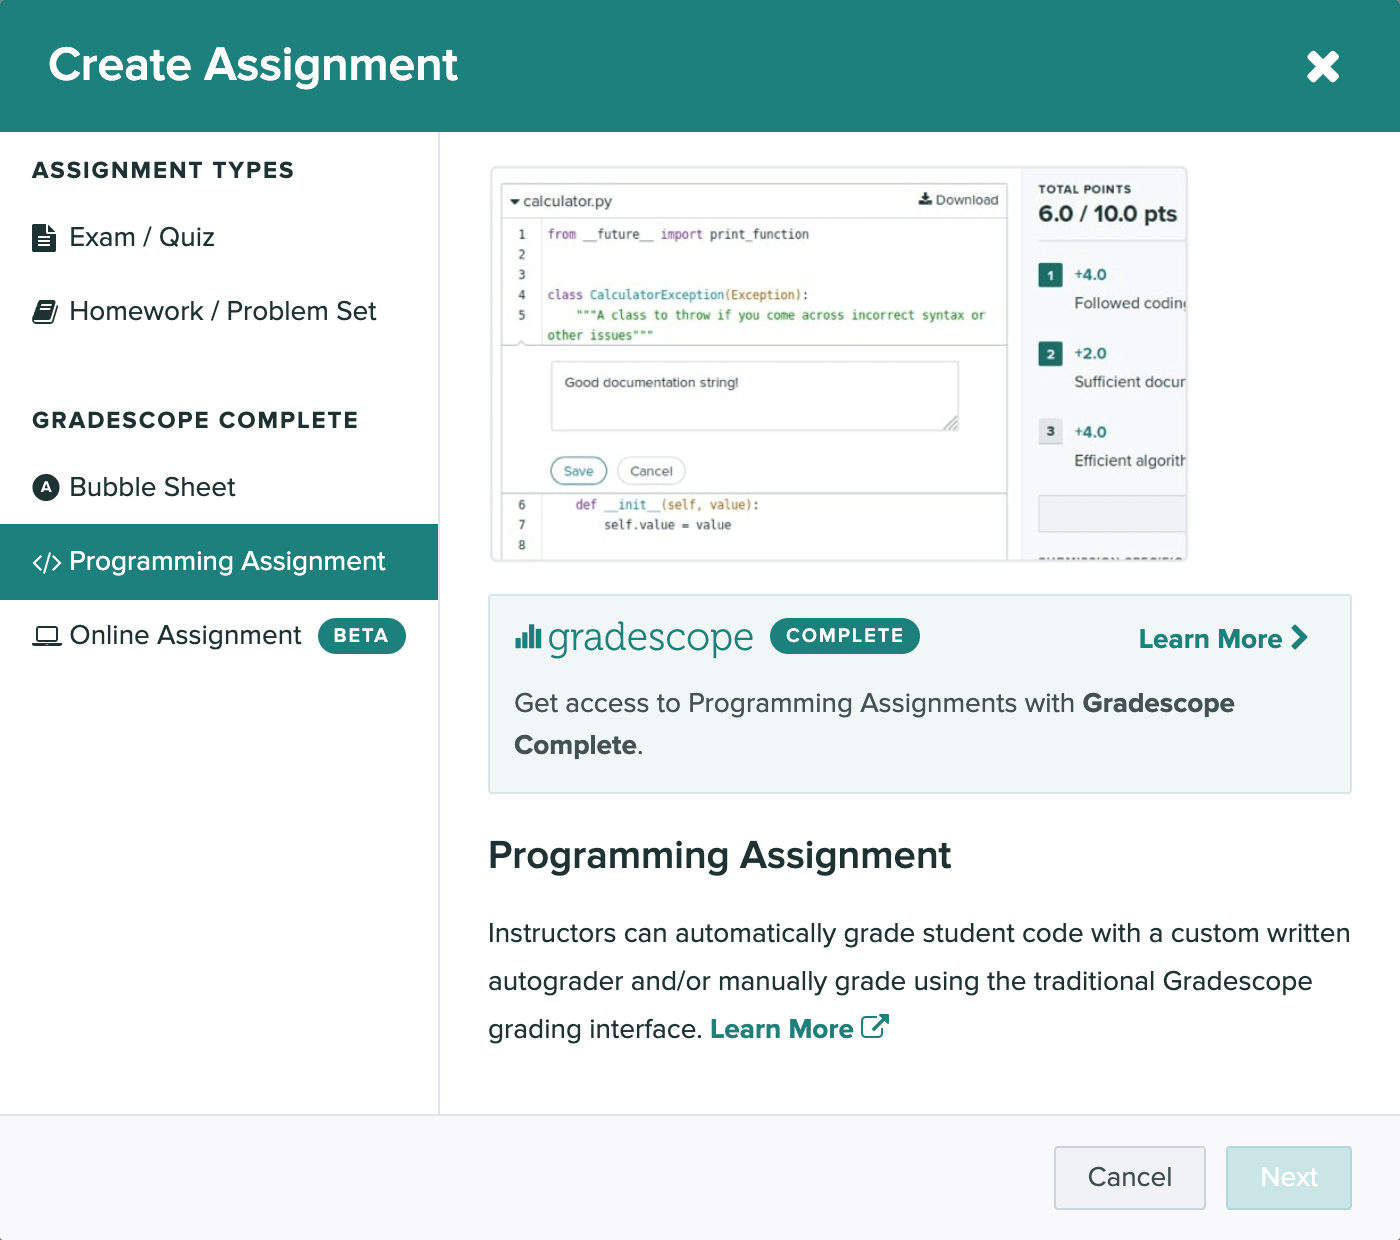 The create assignment modal is open and the bubble sheet option is selected.